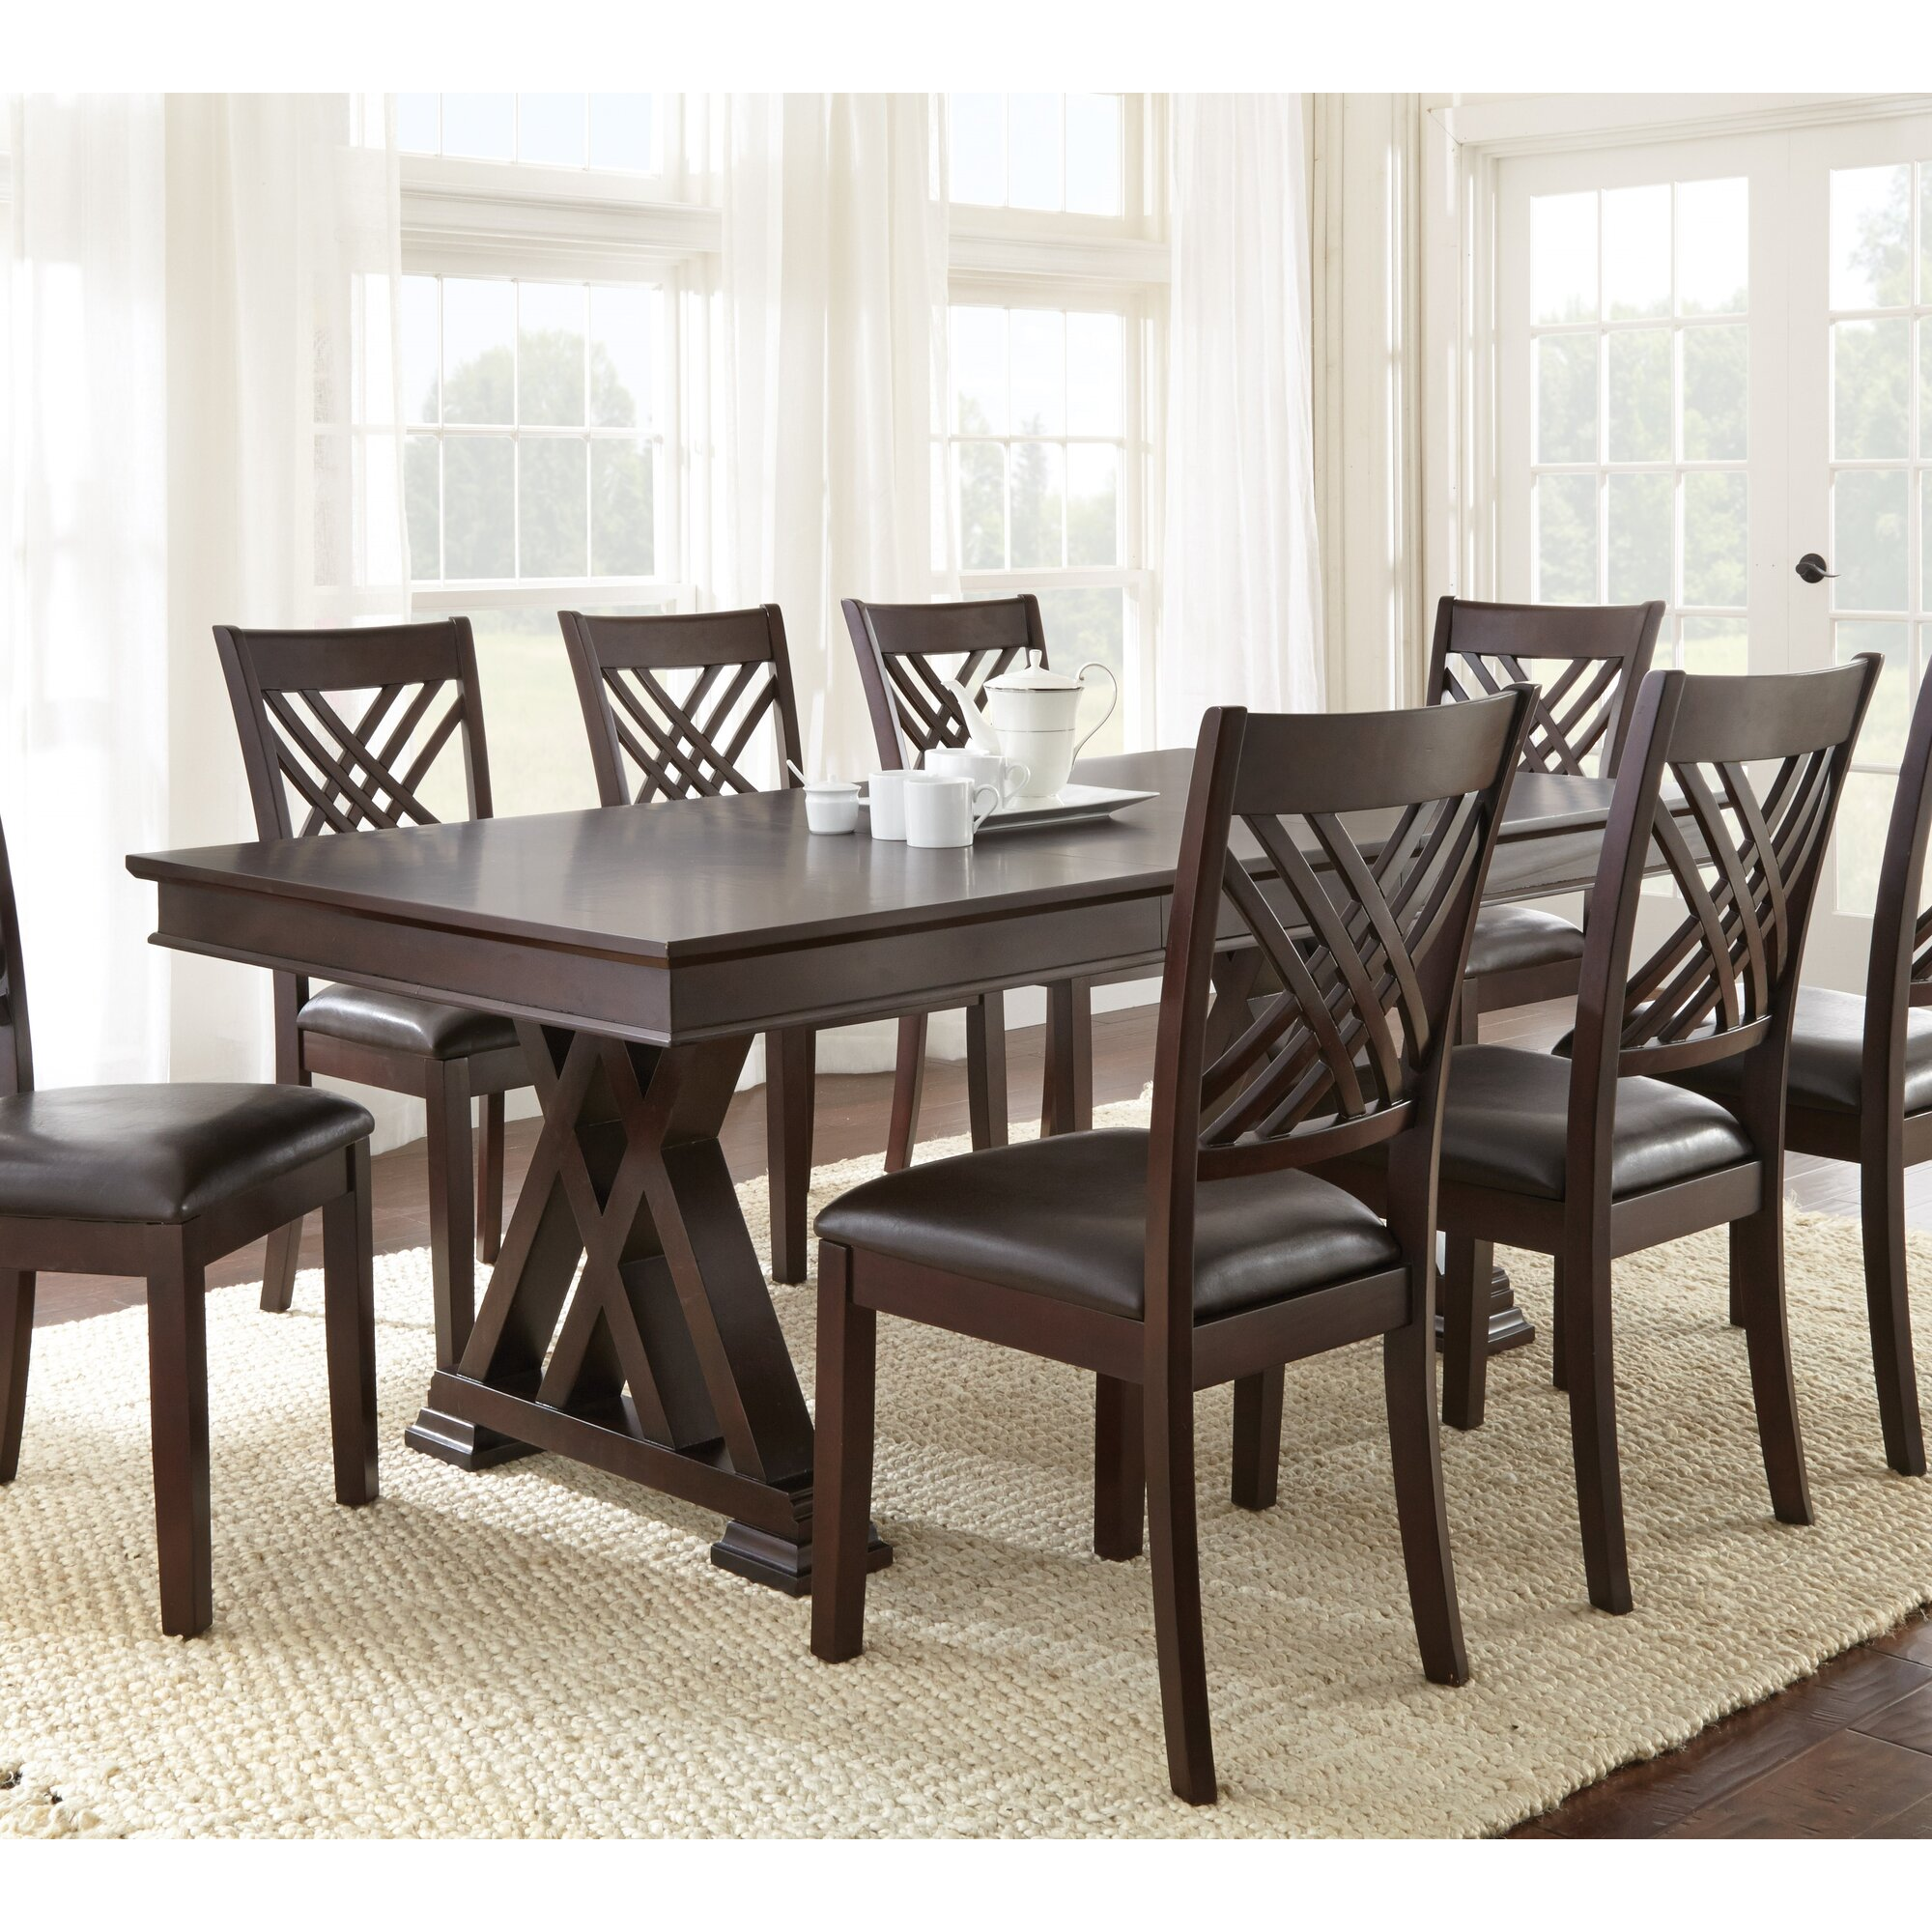 Brayden Studio Adrian Extendable Dining Table & Reviews | Wayfair